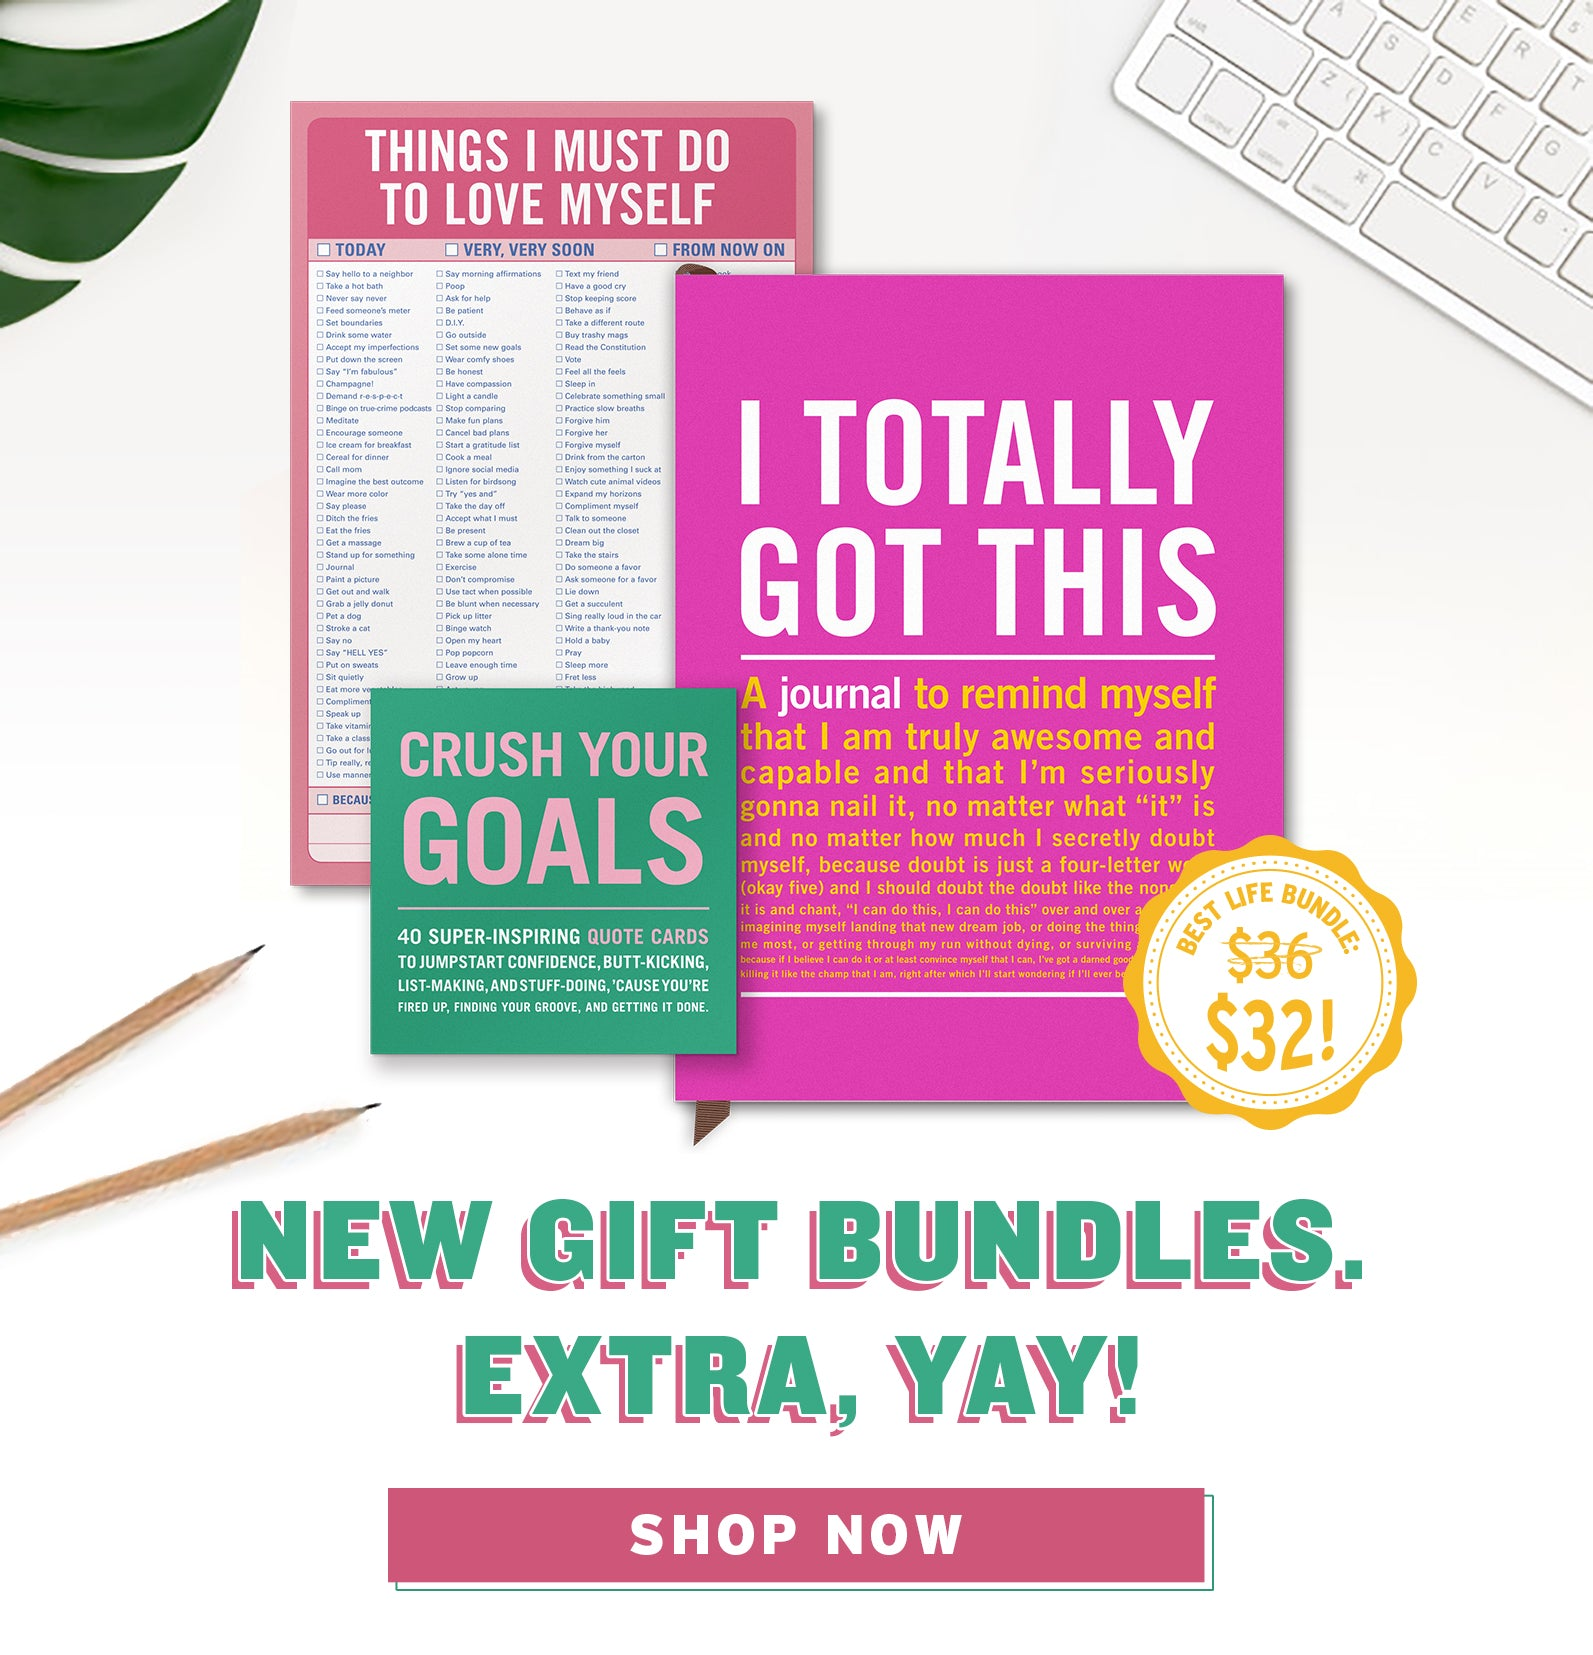 New Gift Bundles. Extra, Yay! SHOP NOW